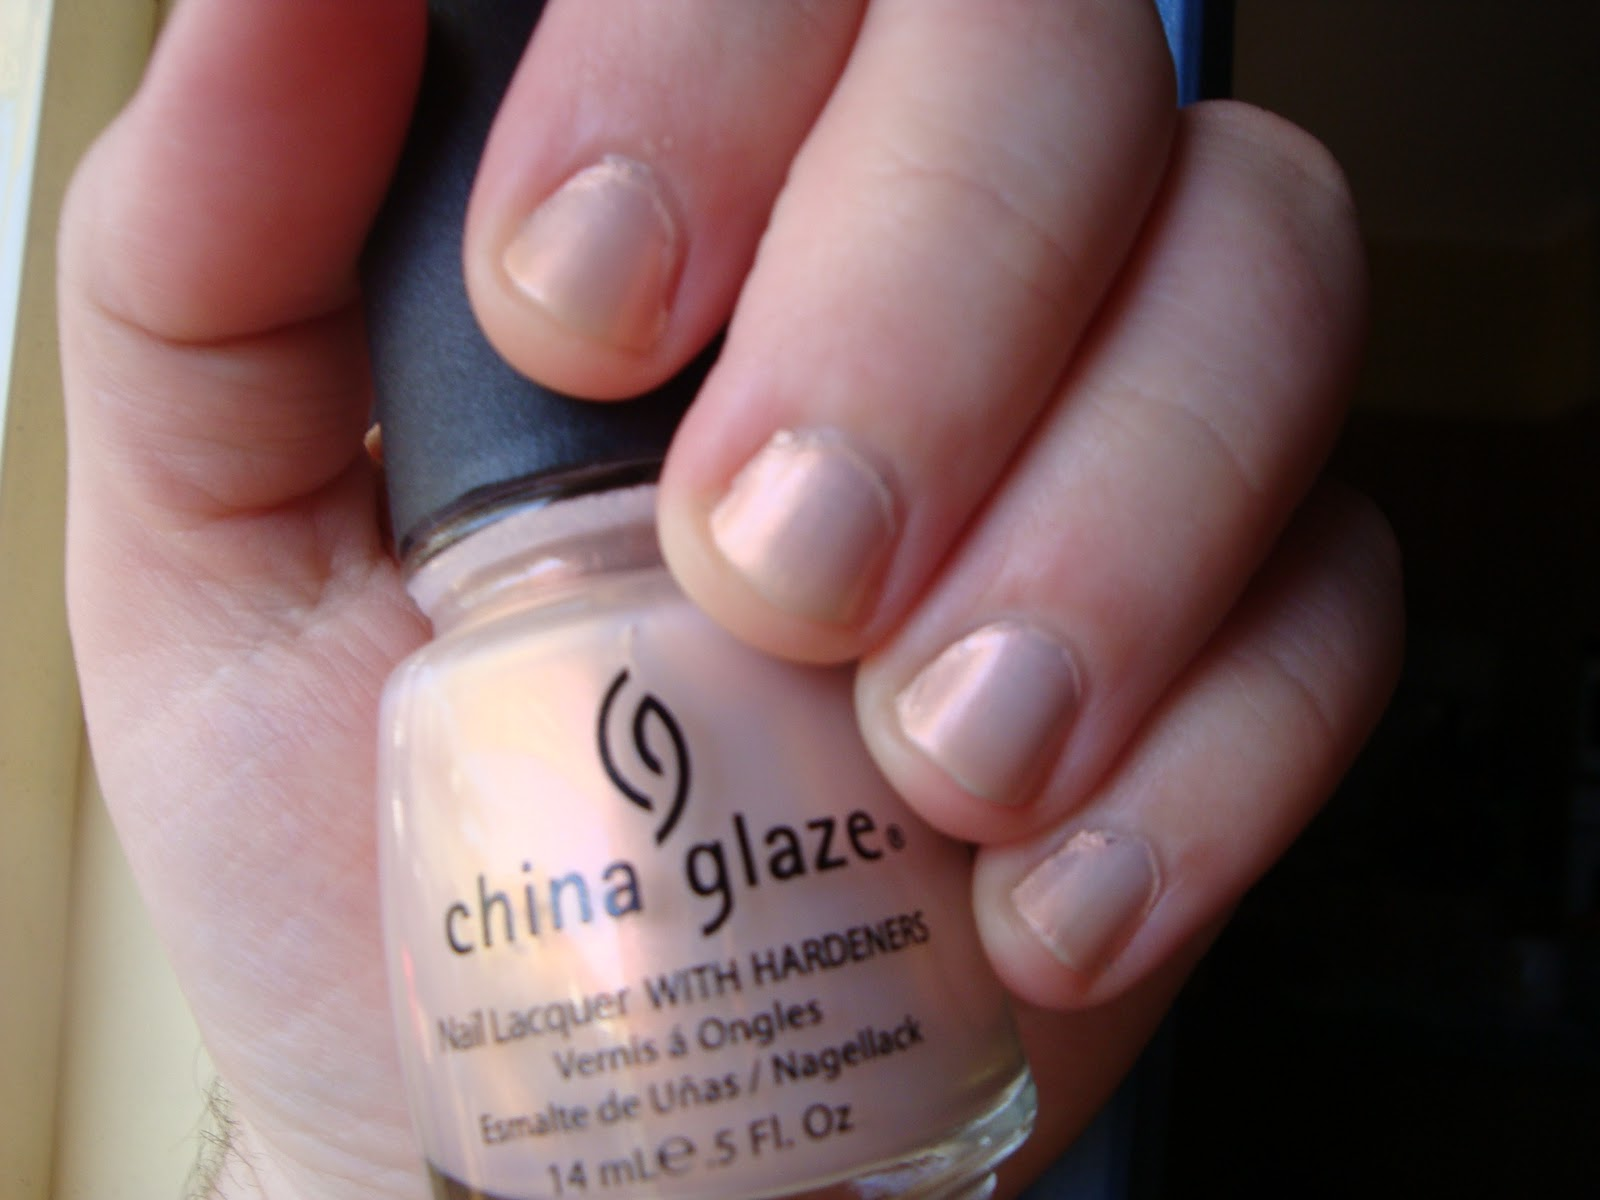 DanniiBeauty: China Glaze nailpolish review - Cheek to Cheek colour